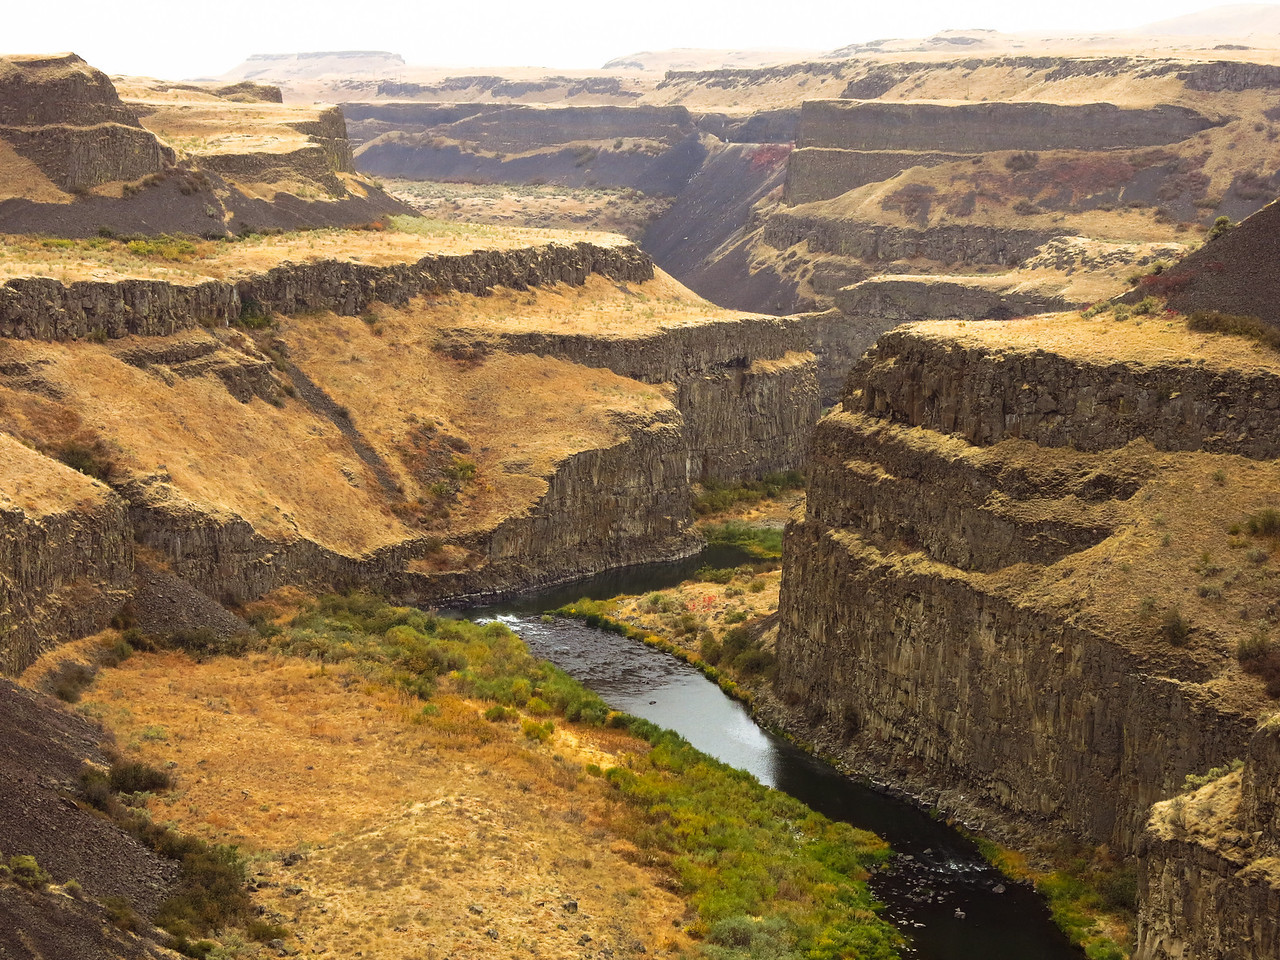 This is a downstream view of the Palouse RIver below Palouse Falls.  The Palouse RIvers empties into the Snake at Lyons Ferry.  The Snake RIver flows west from here and, in about 120 miles from Lyons Ferry, it reaches a confluence with the mighty Columbia River at Pasco, which is one of the Tri-Cities in Washington state.